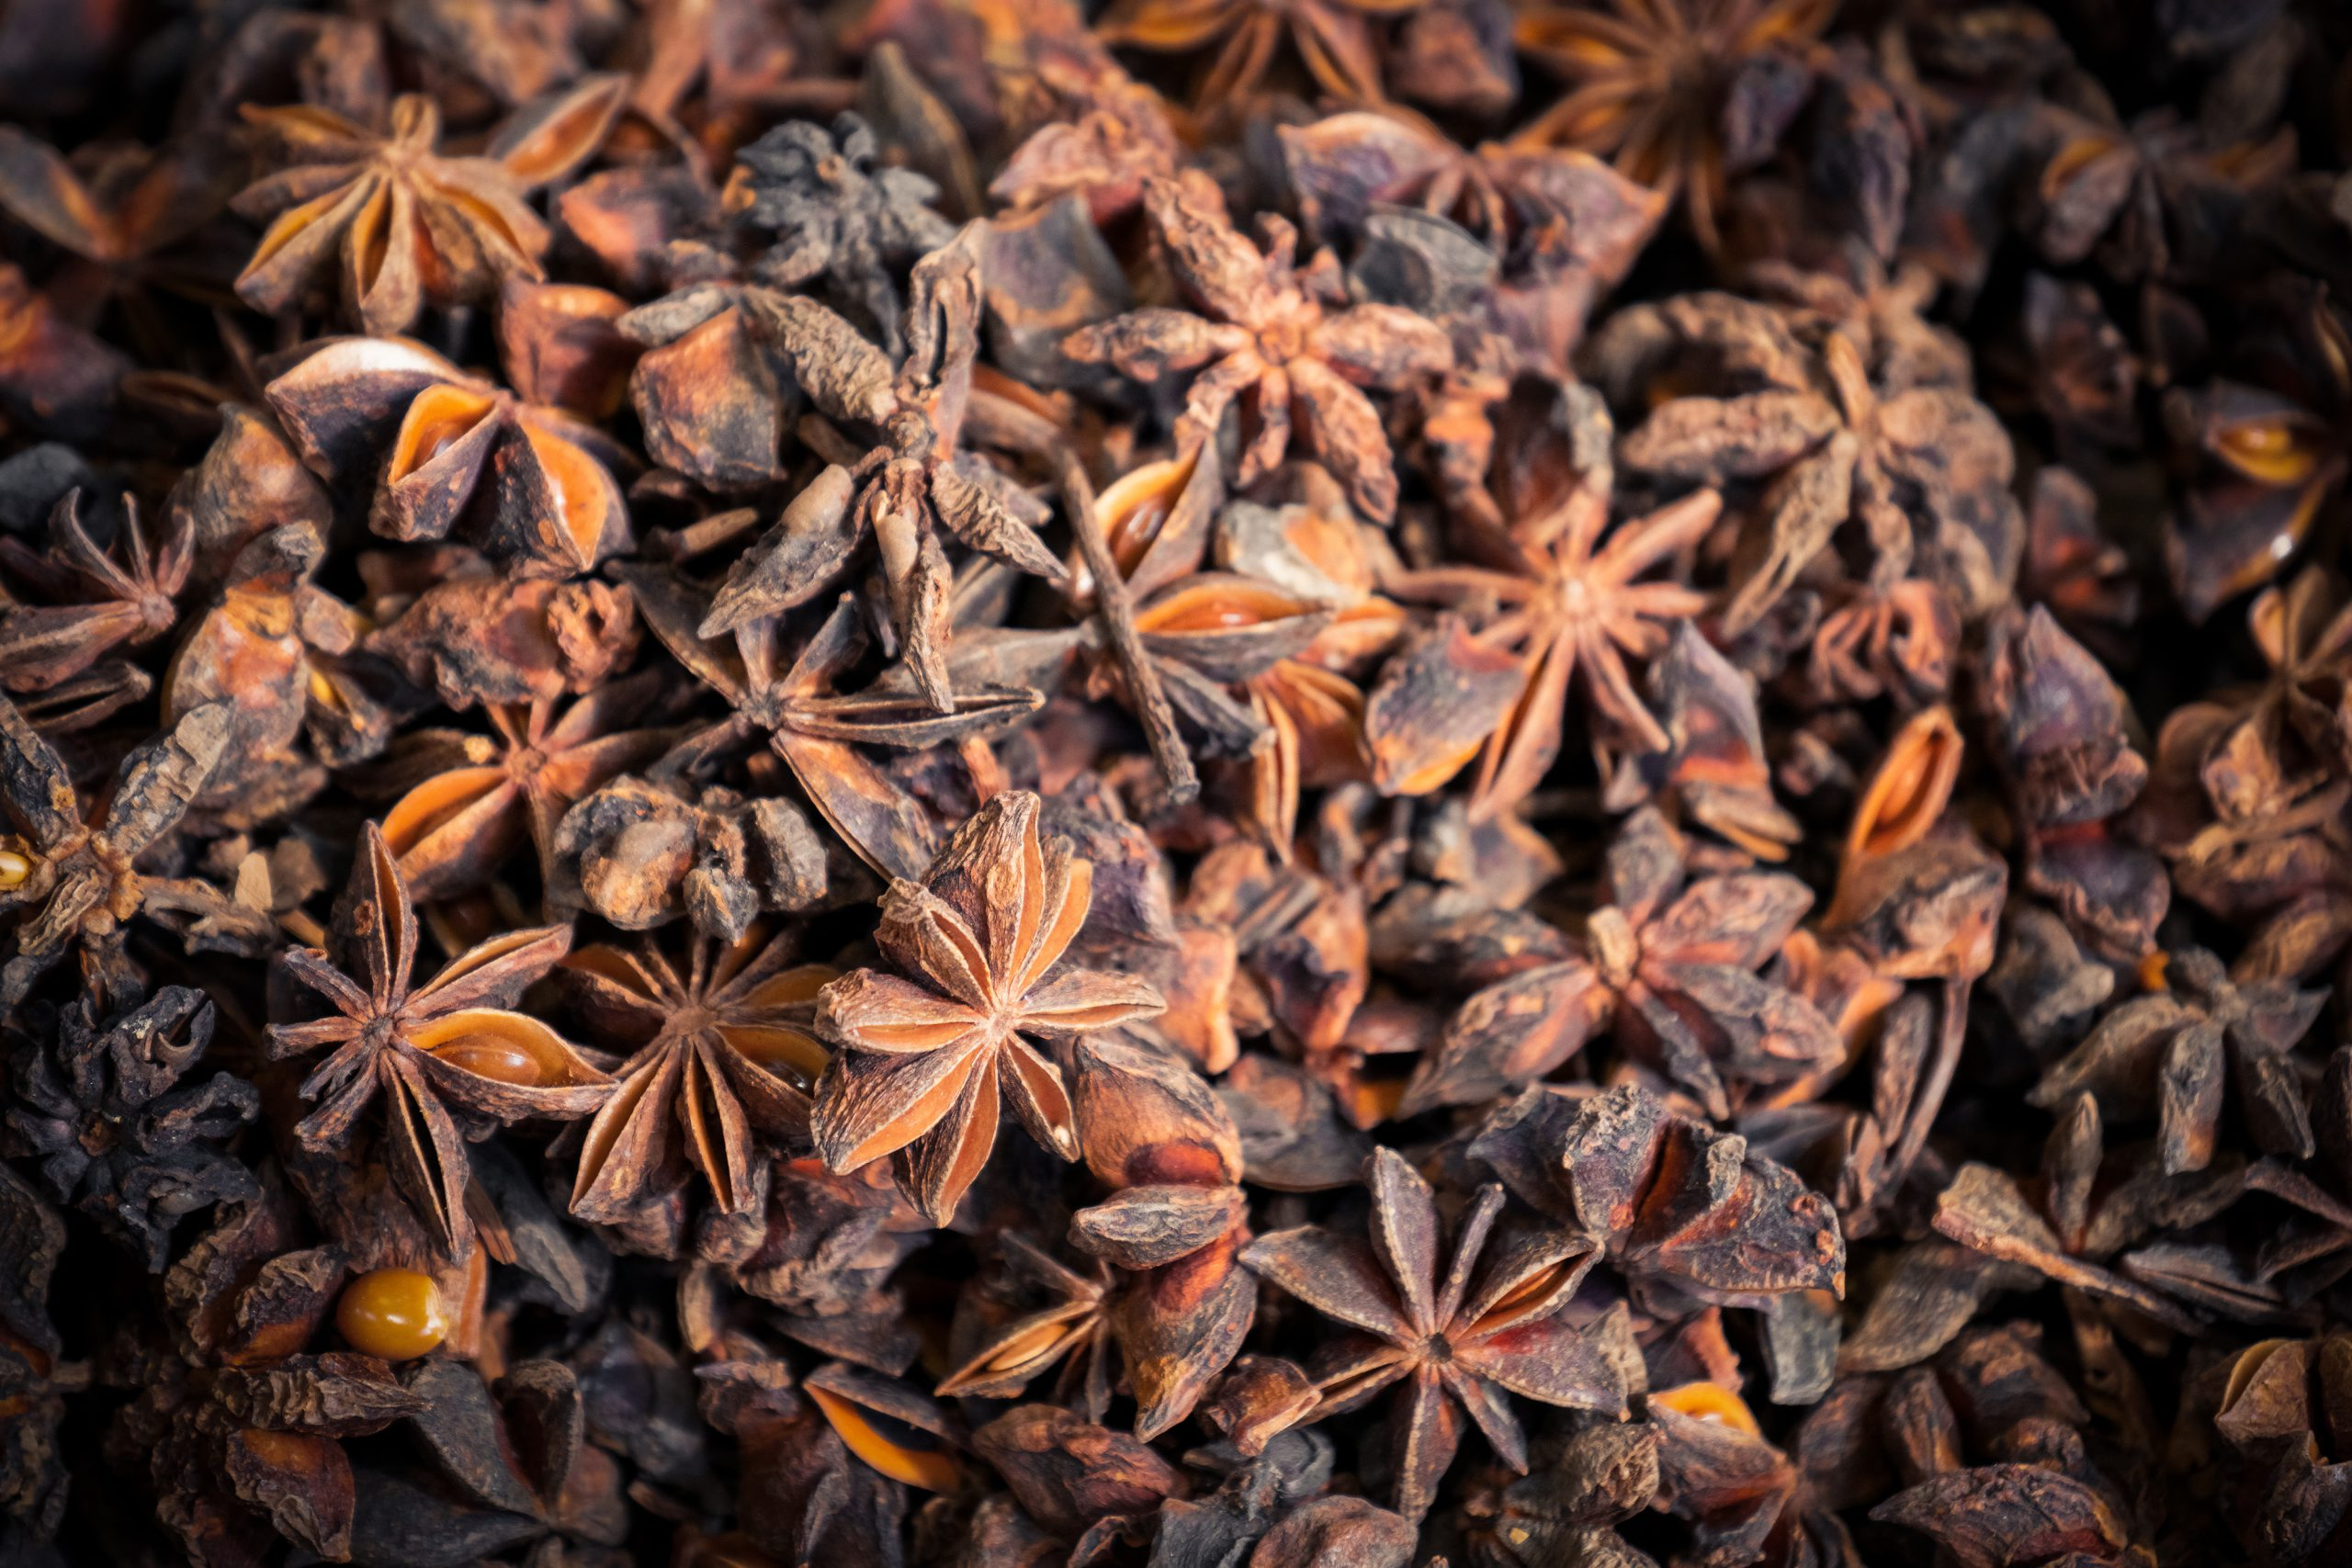 star anise substitute, star anise pods, what is star anise